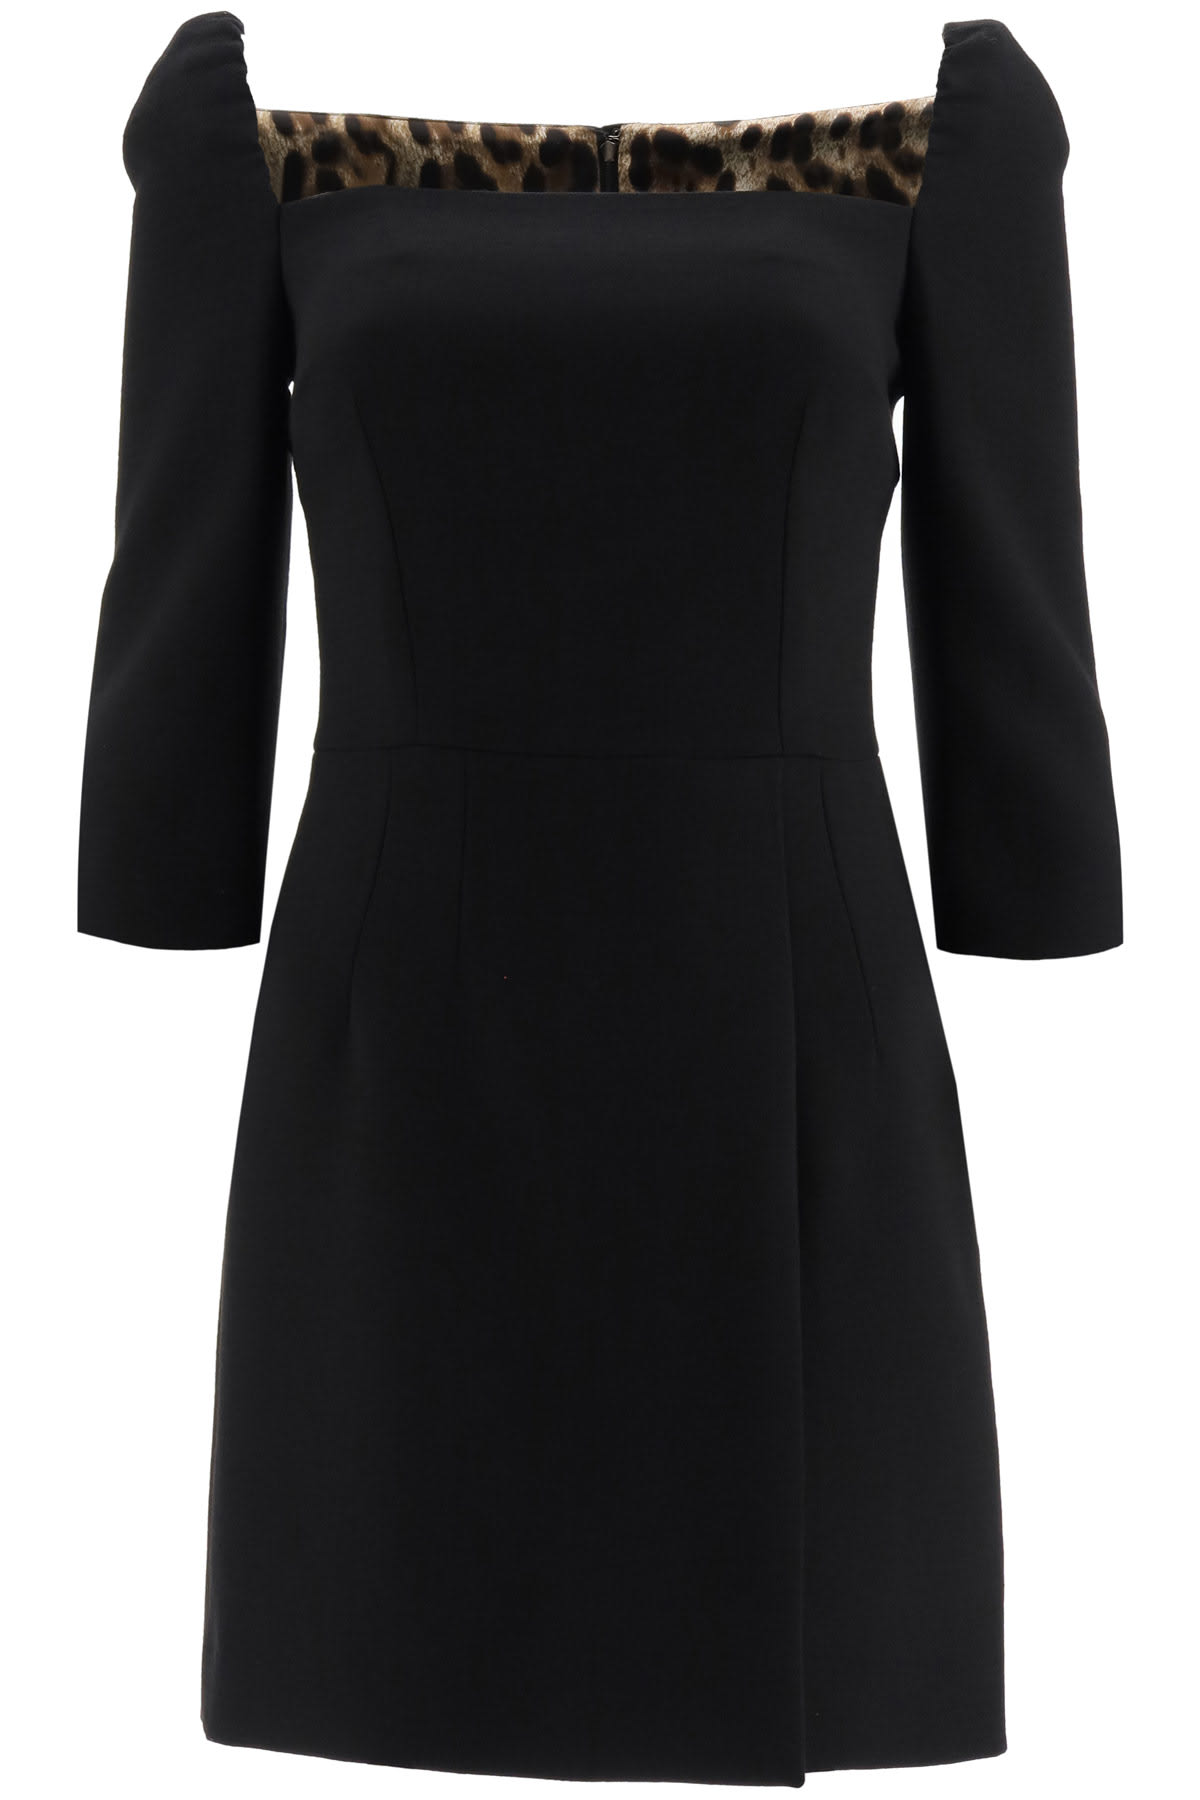 Dolce & Gabbana Wool Crepe Mini Dress